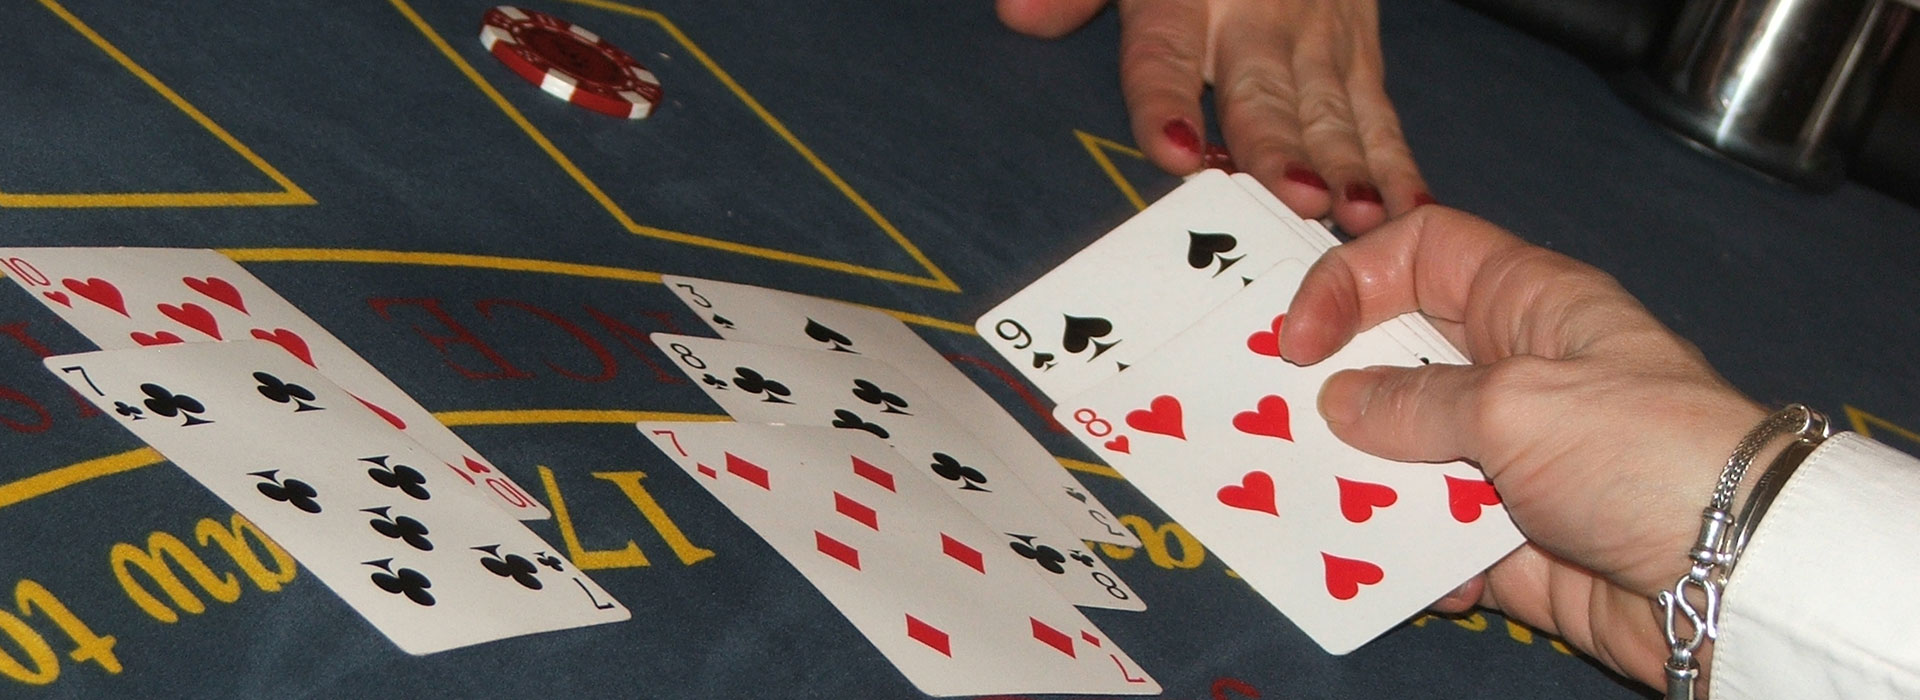 Casino Hire for Clubs & Associations